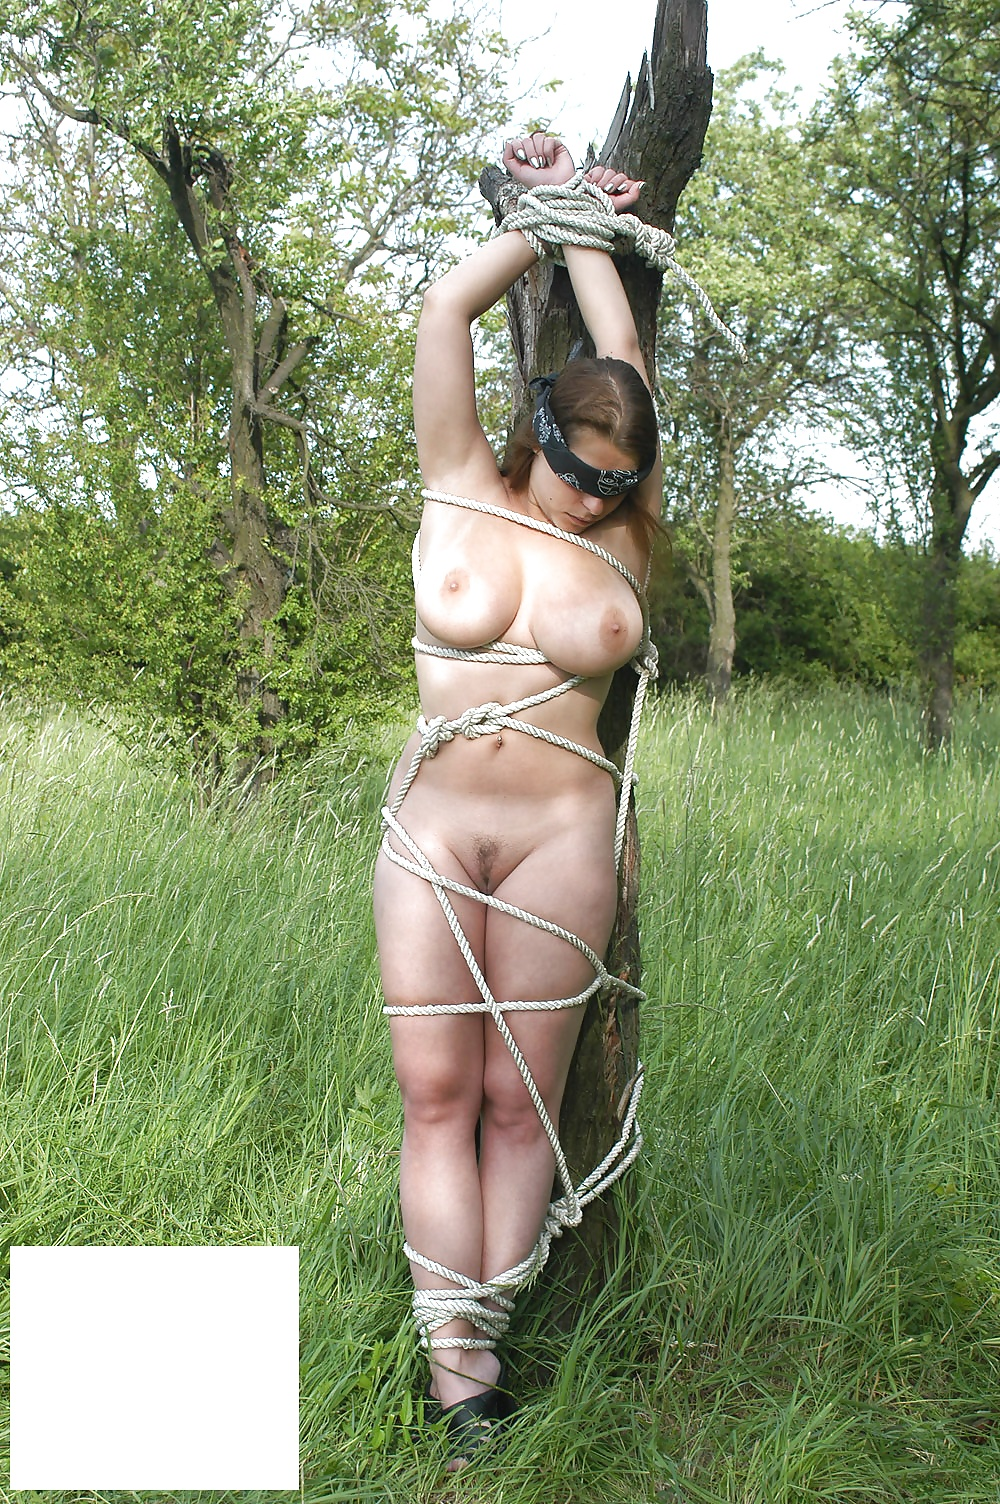 Schoolgirl shione cooper gets bound naked outdoors